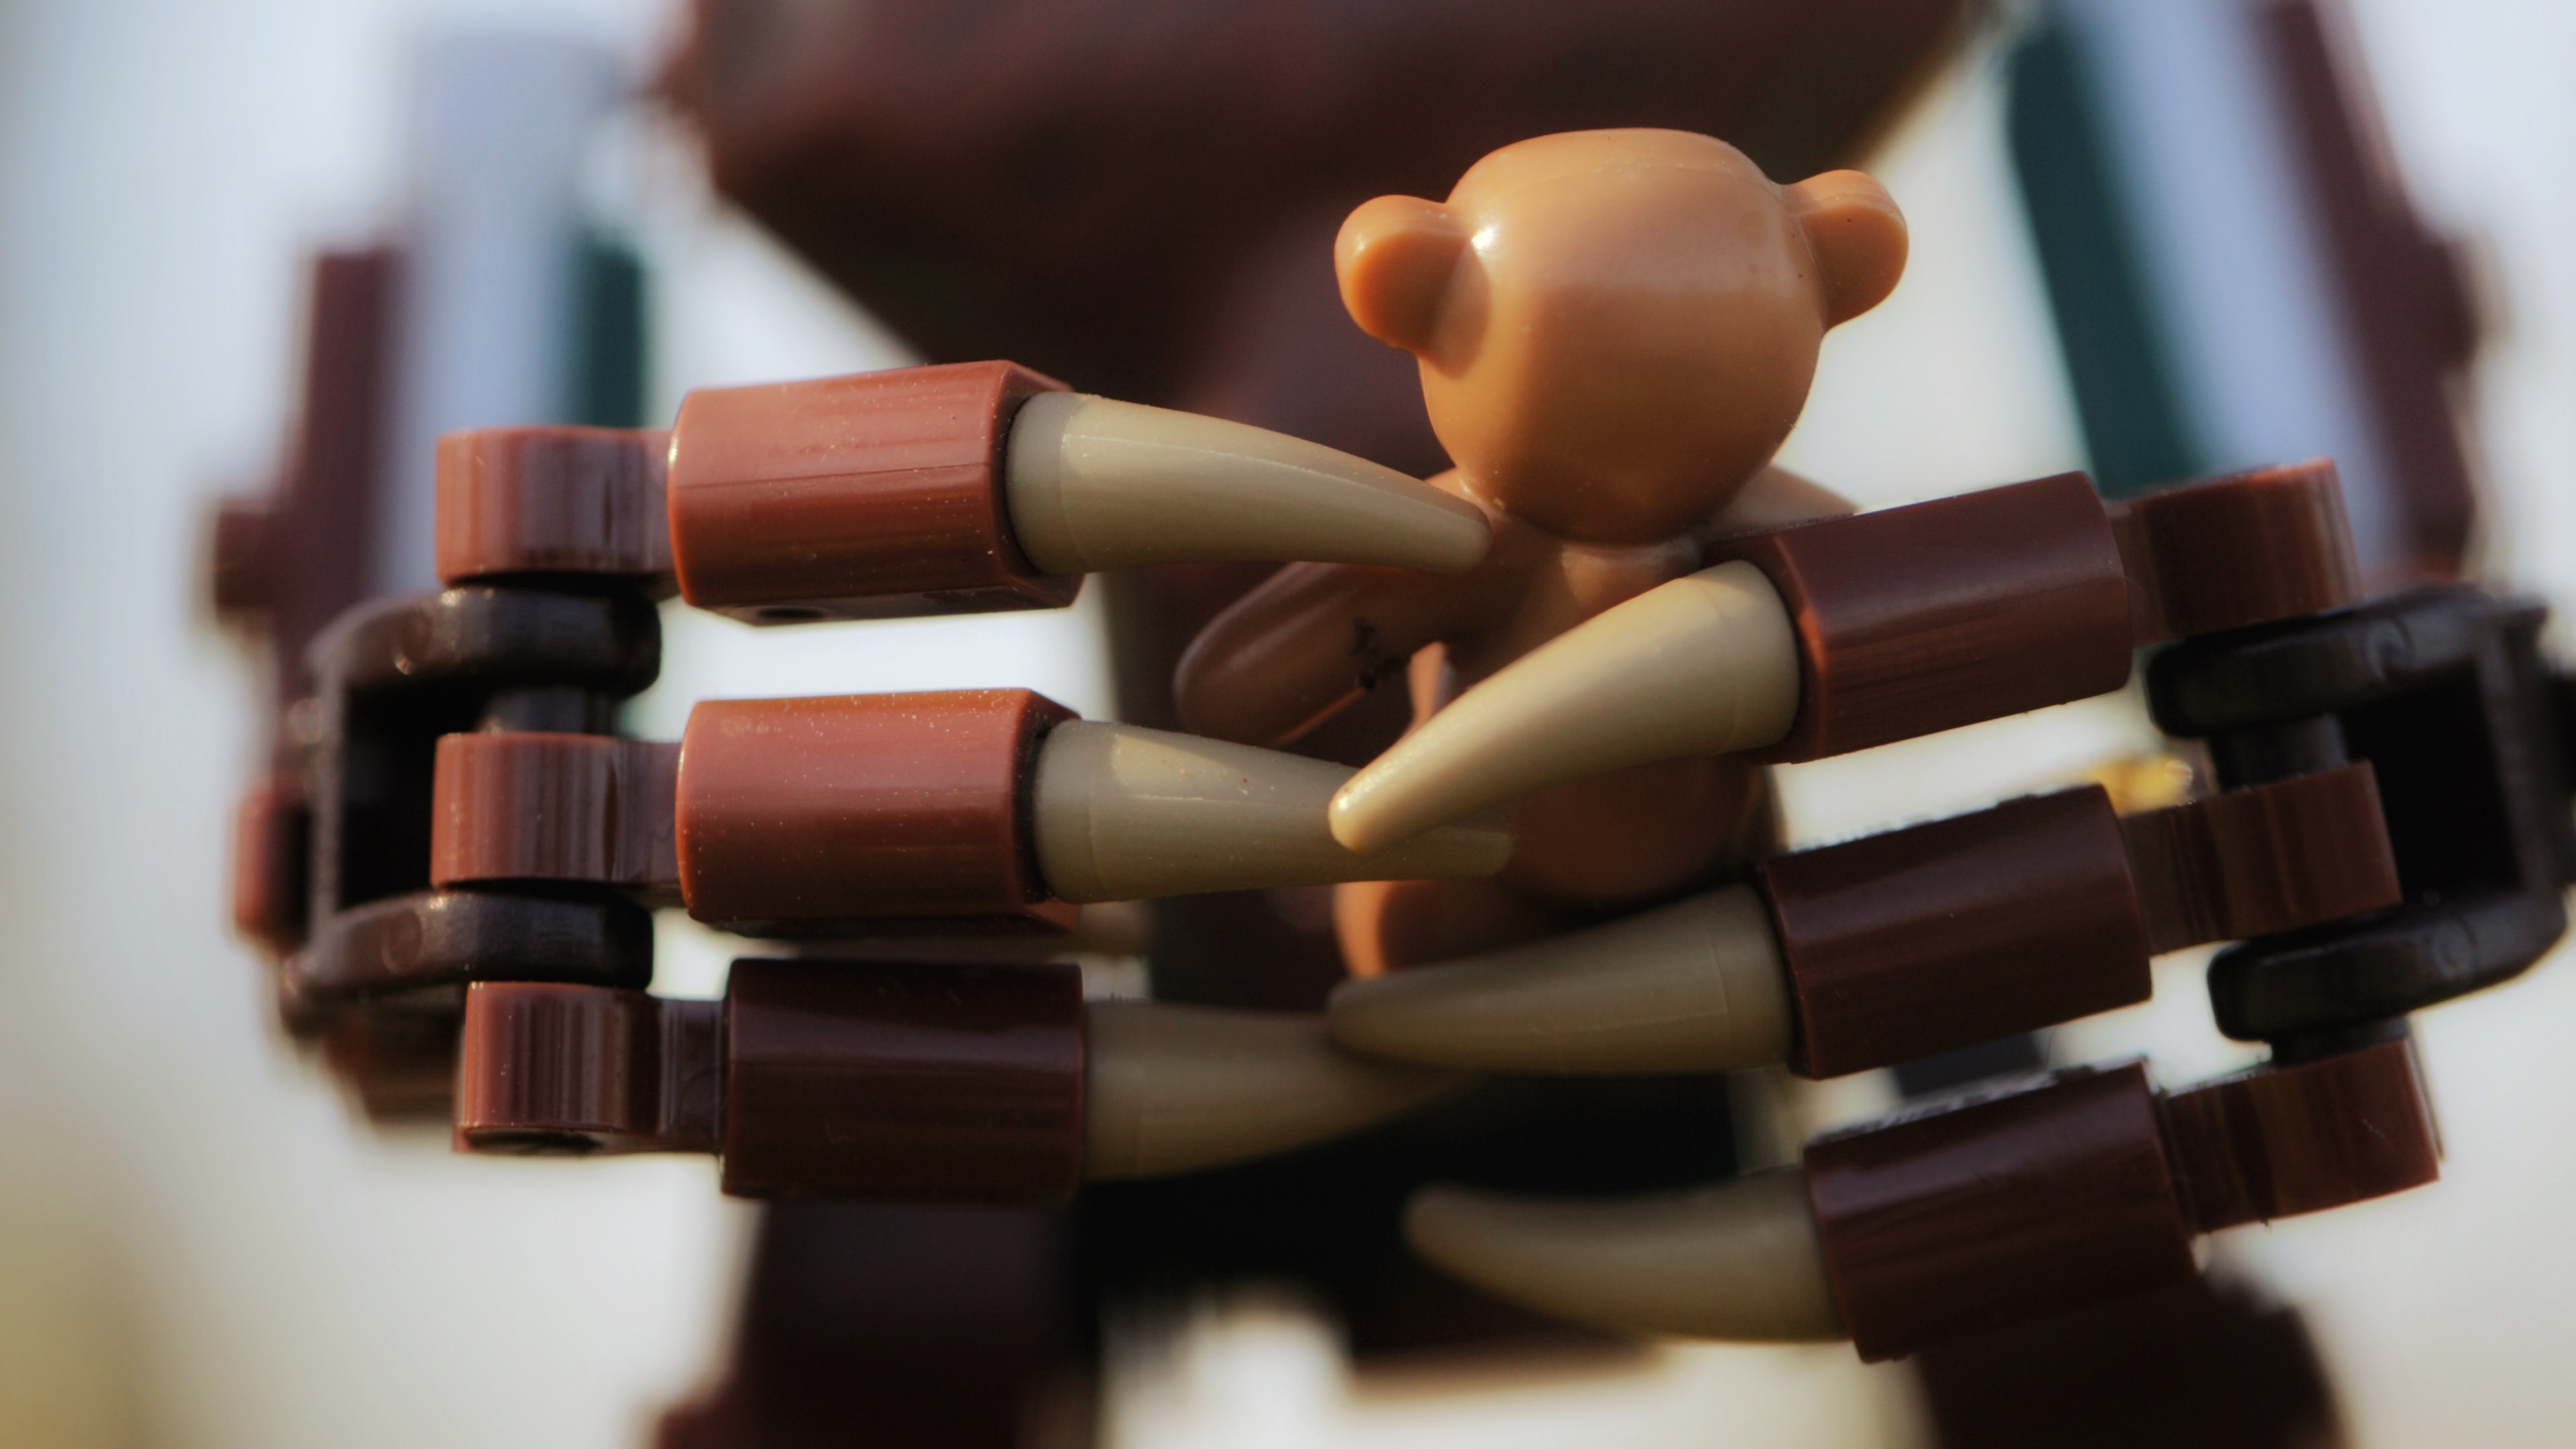 The large lego hands of Groot cradle a small lego teddy bear in this close up image.